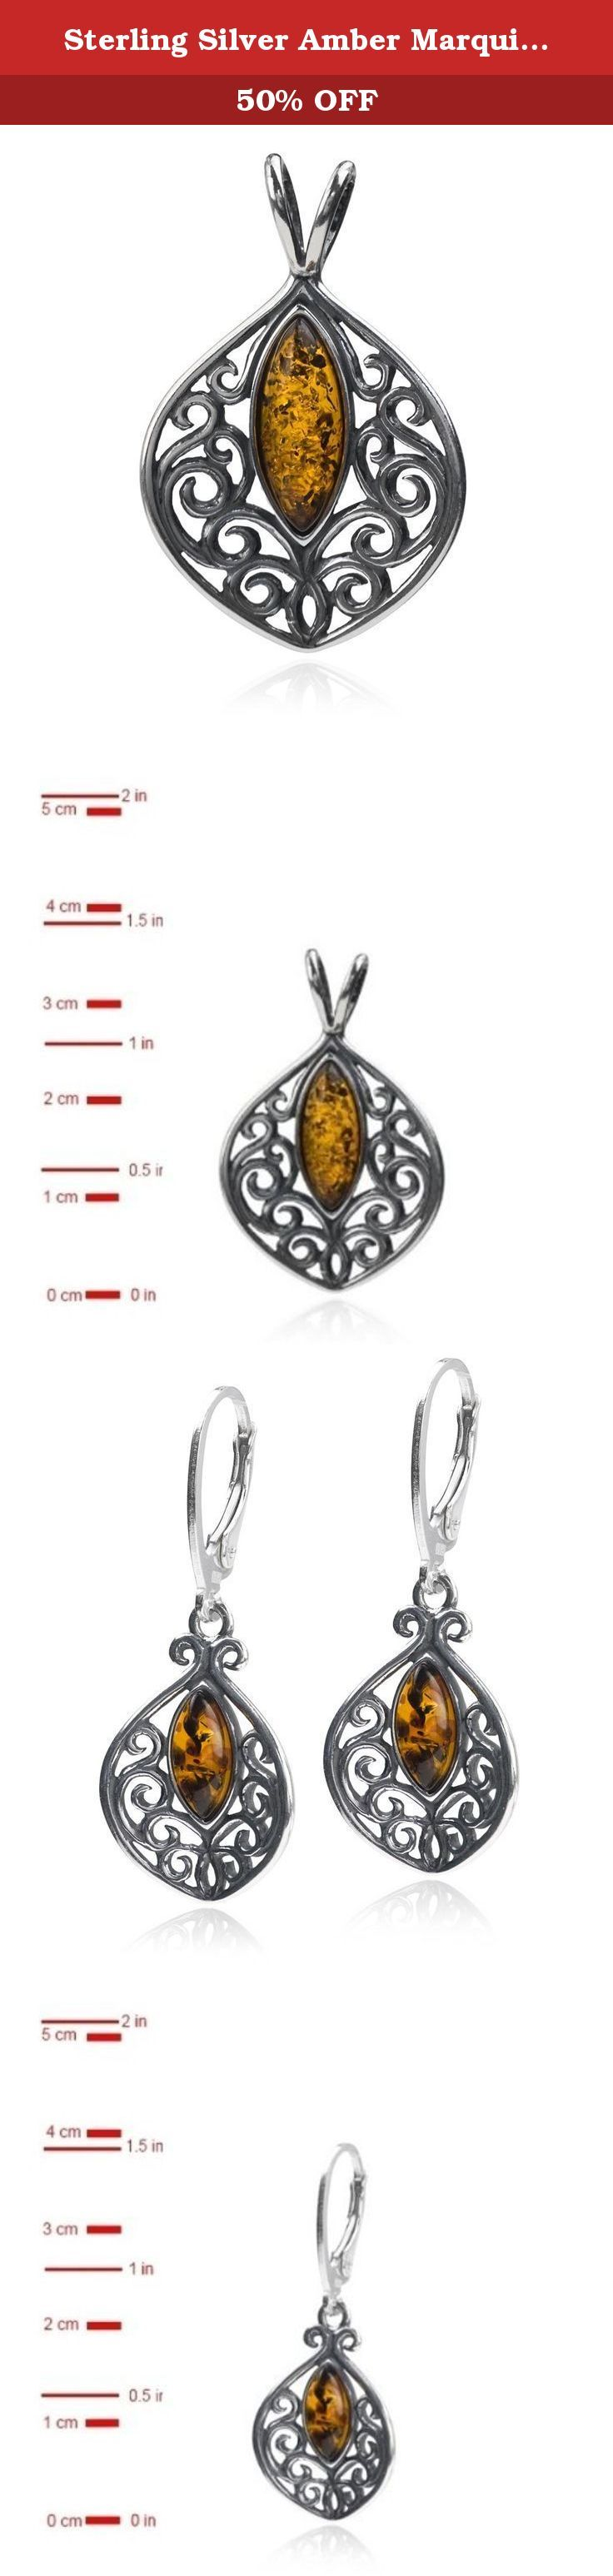 Sterling Silver Amber Marquise Shaped Pendant Earrings Necklace Set Chain 18 Inches. Most of our amber found in Baltic sea area. Baltic sea considered to have biggest deposits of amber and quality of gemstone in this region is better than in any other location. Besides Baltic region there are large deposits of amber in Dominican republic, Columbia and Africa.